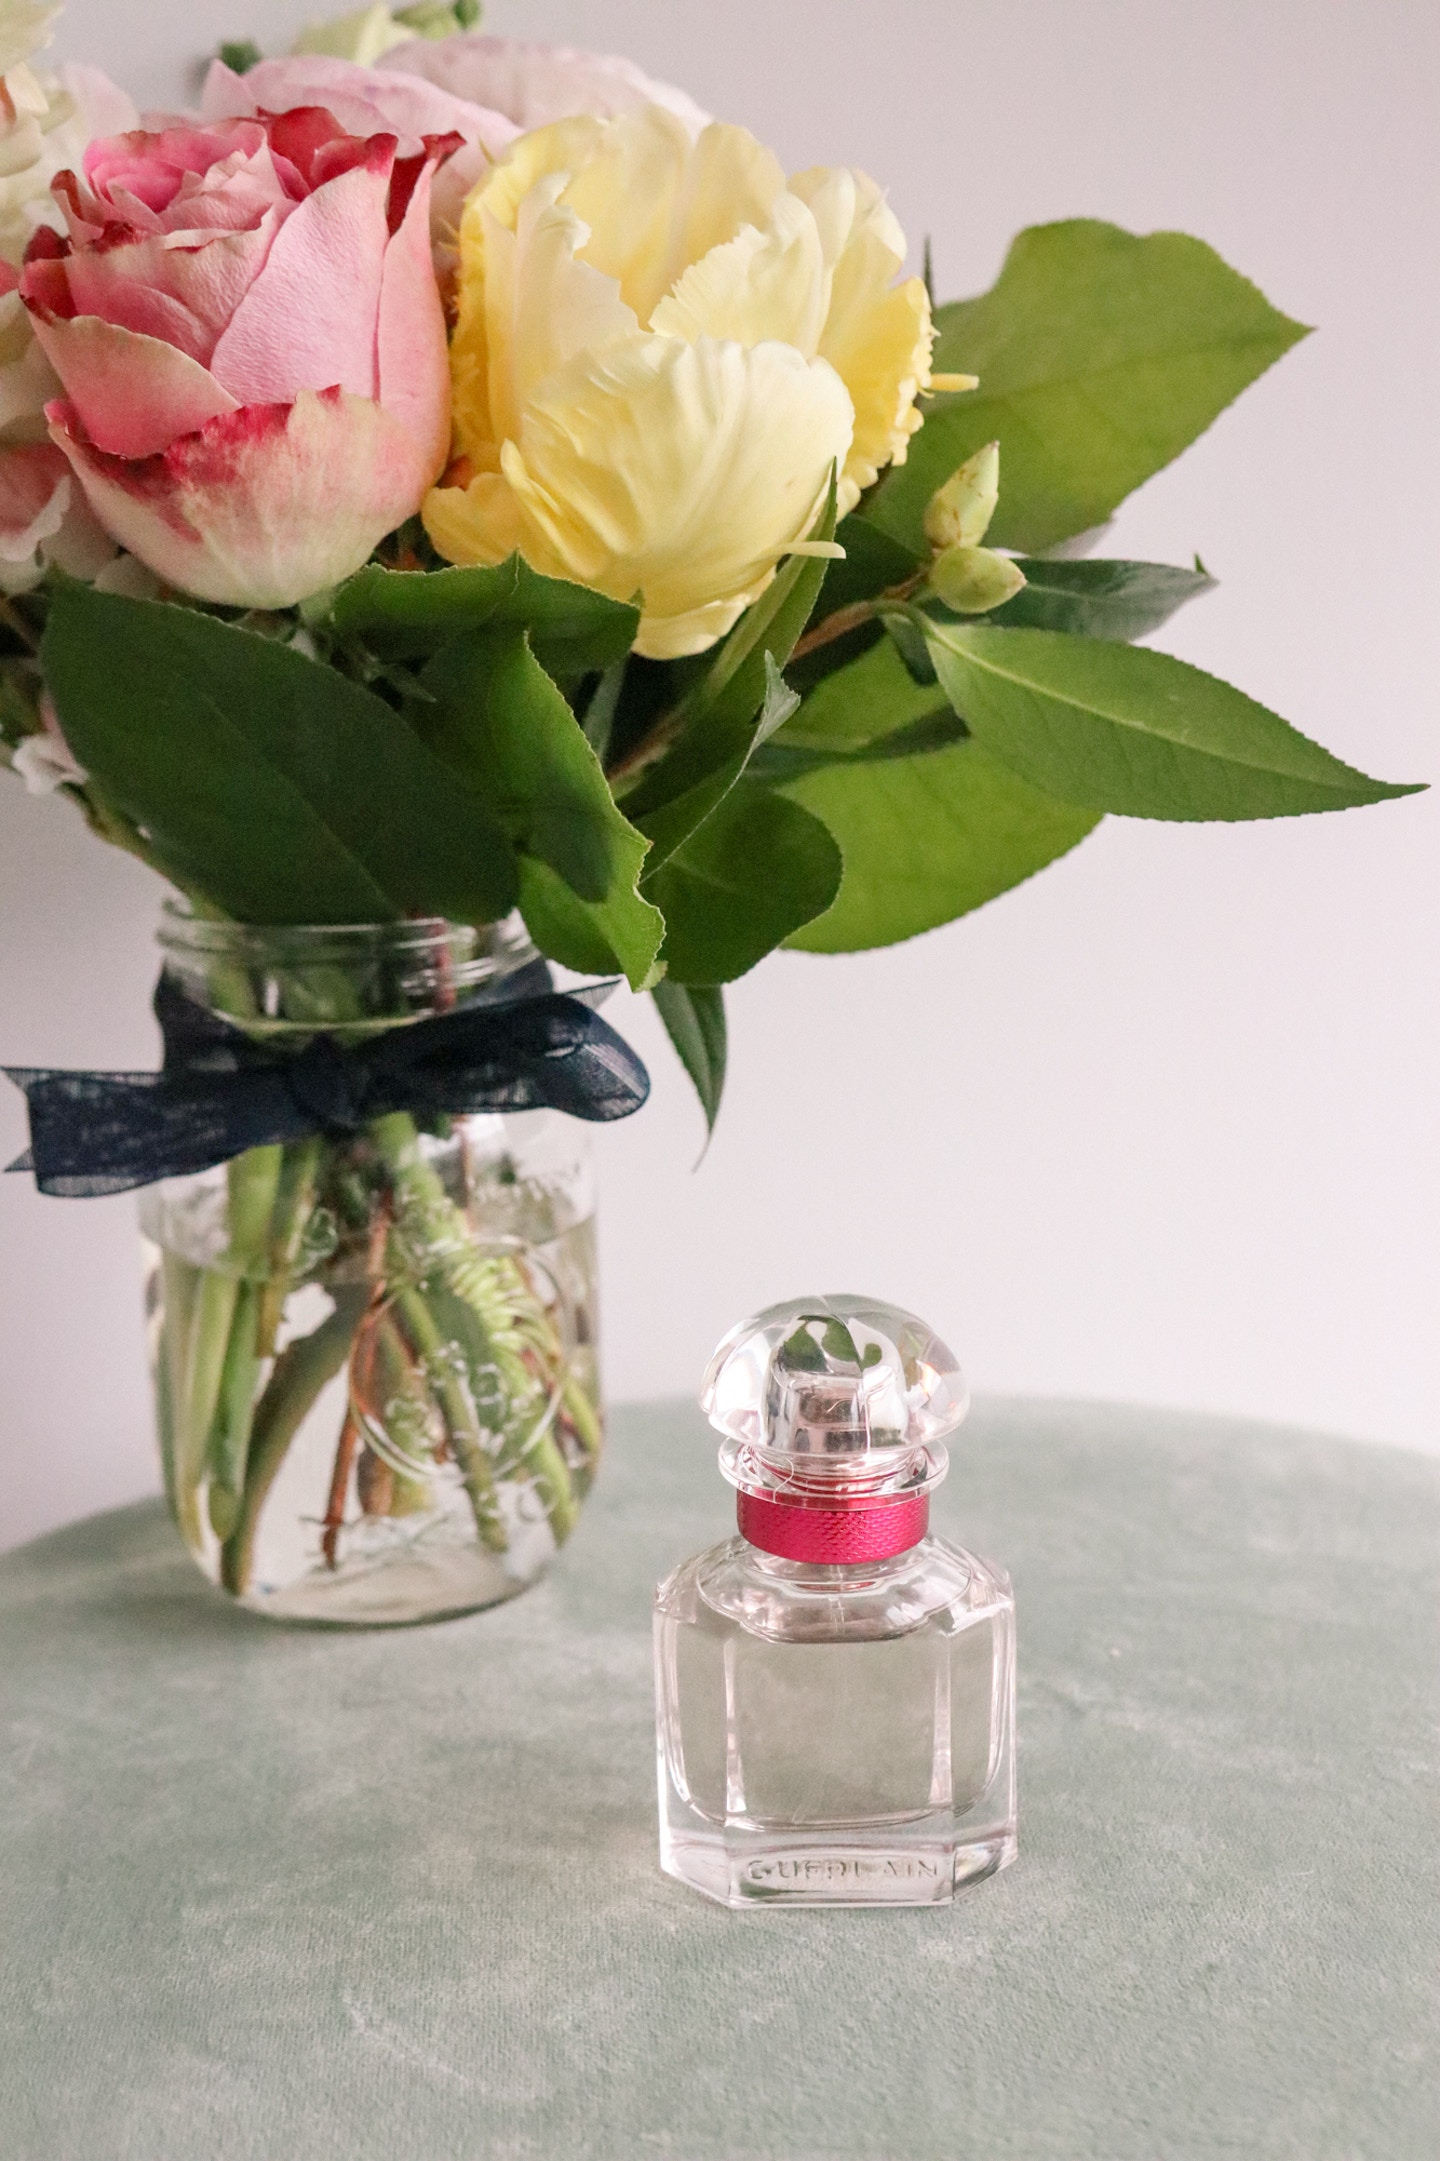 Mon Guerlain Bloom of Rose Eau de Toilette review: a fresh, spring fragrance with notes of citrus, lavender, rose and vanilla.